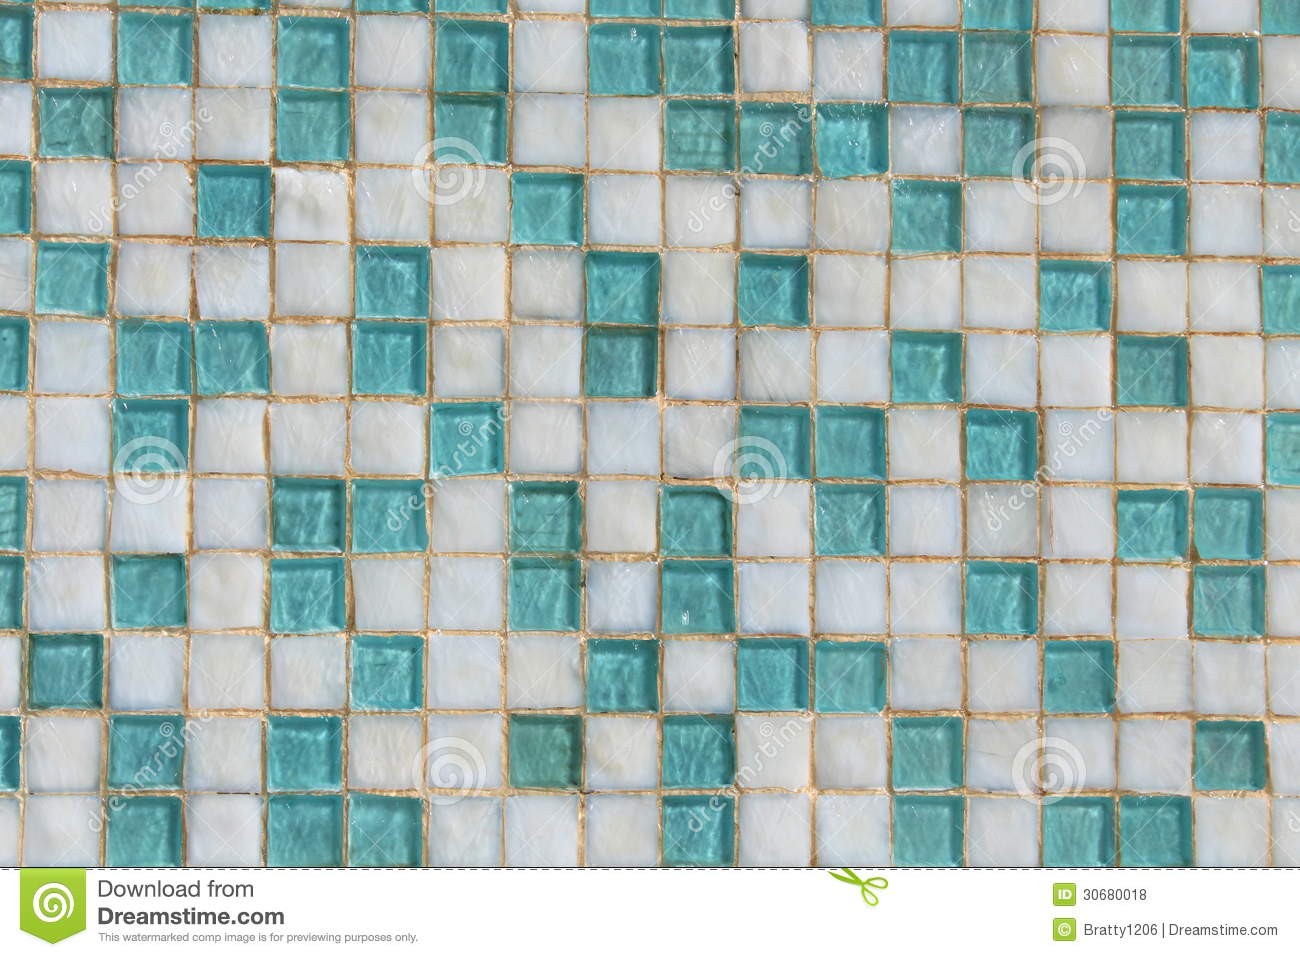 Light blue and white square tile background stock photo image of light blue and white square tile background dailygadgetfo Gallery